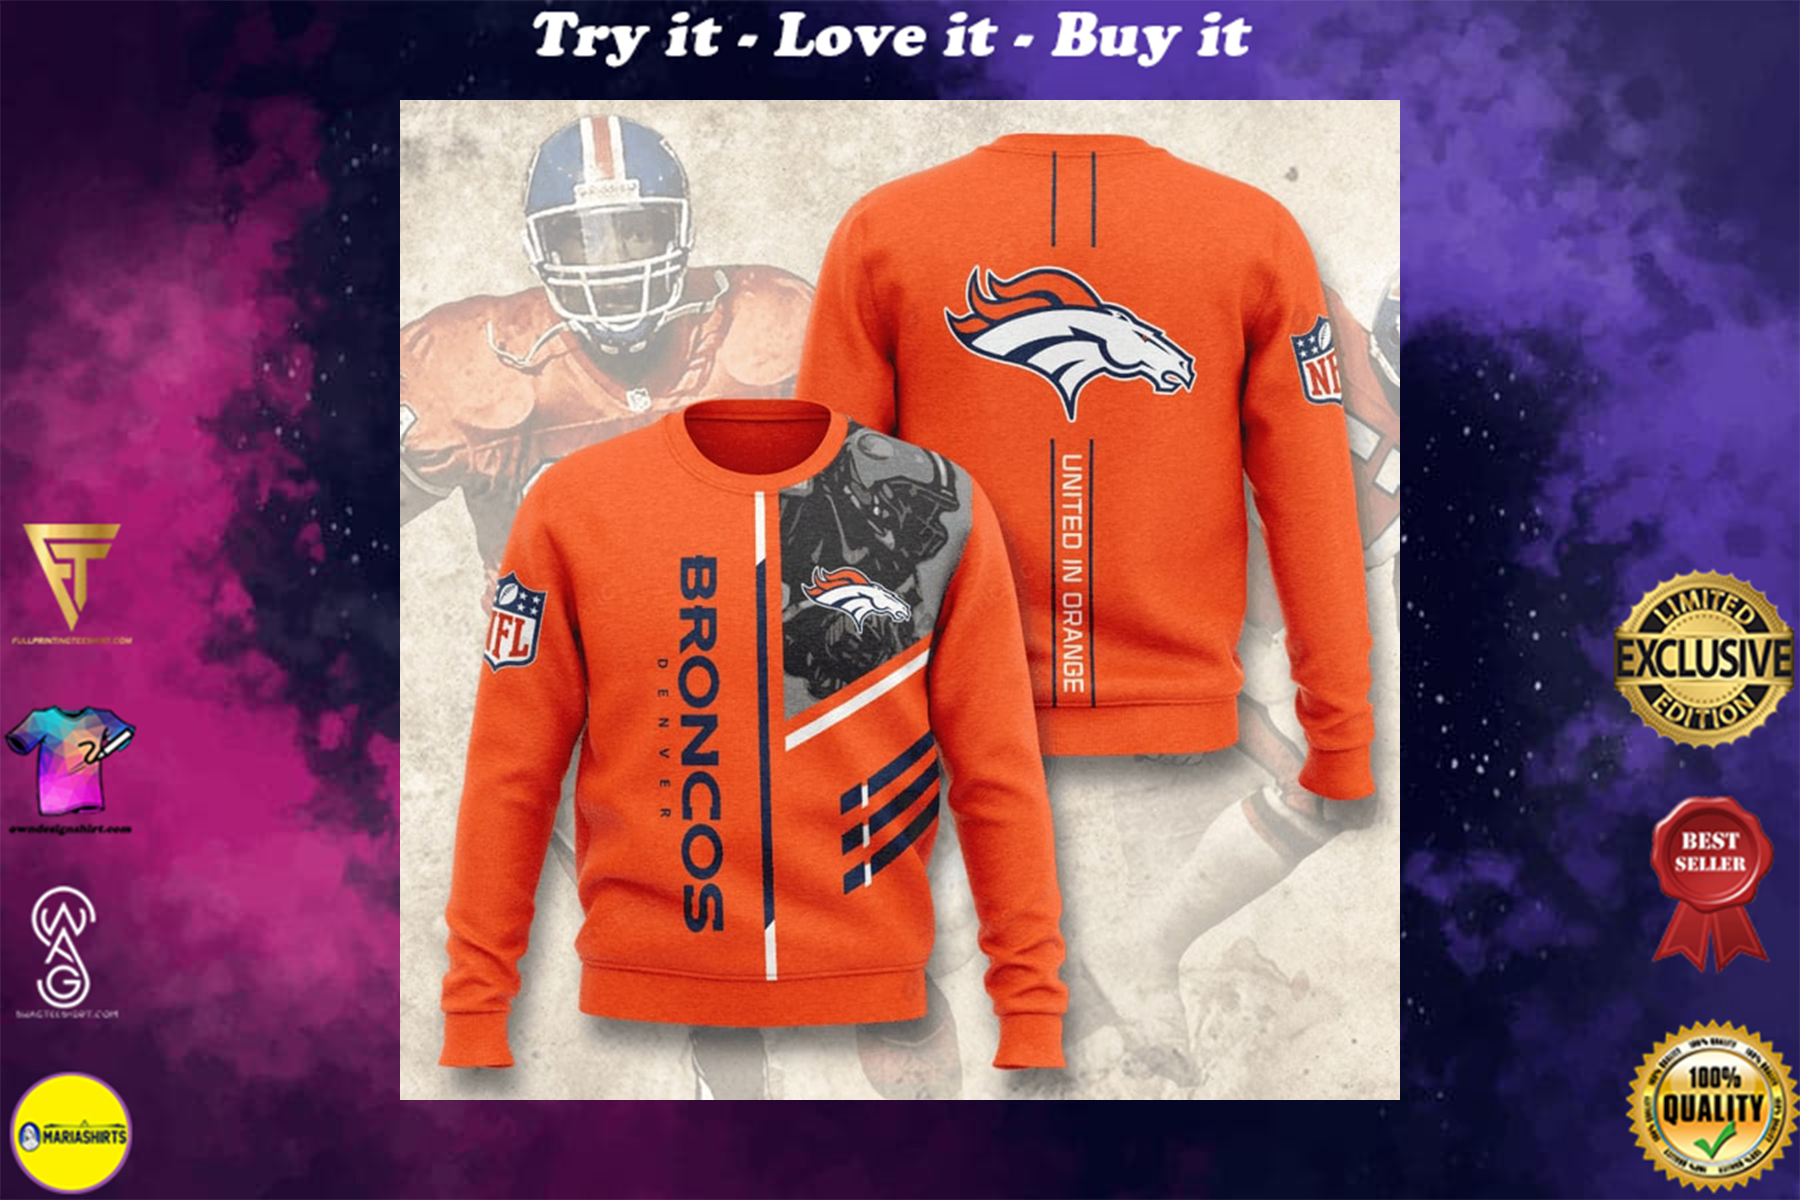 [special edition] denver broncos united in orange full printing ugly sweater - maria